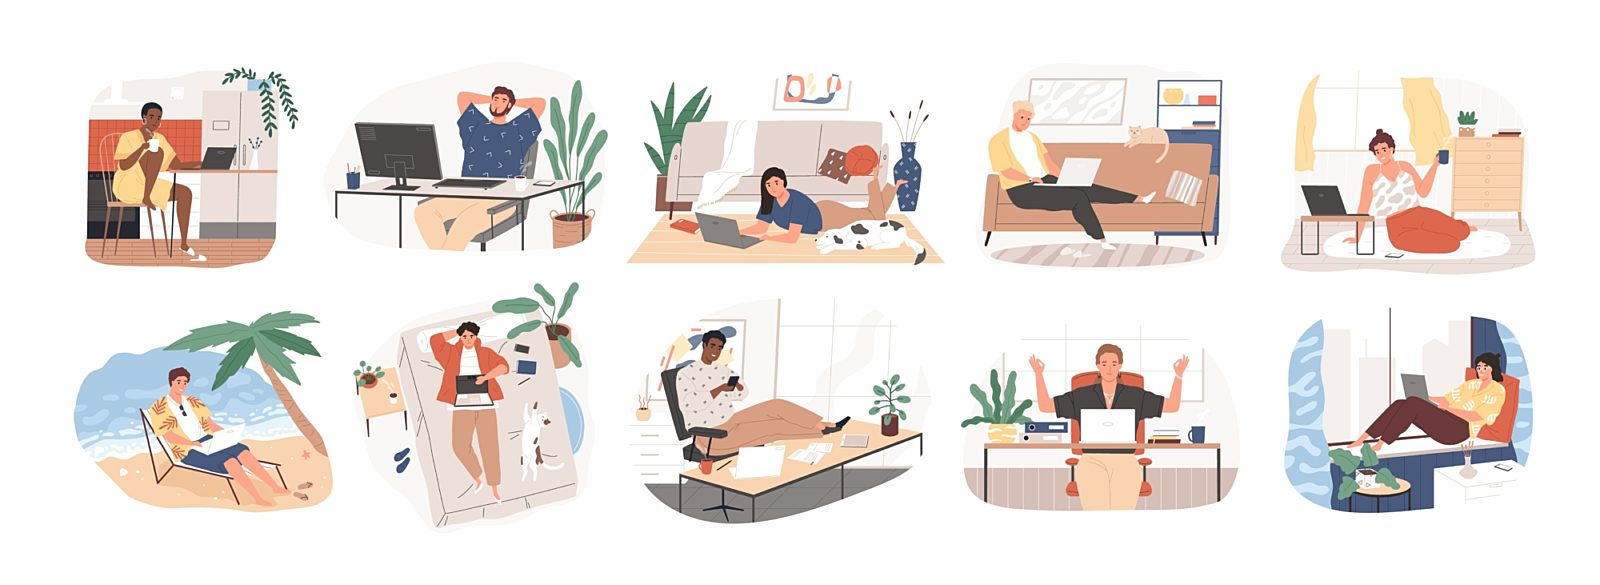 Cartoon illustrations of people working in different settings and environments